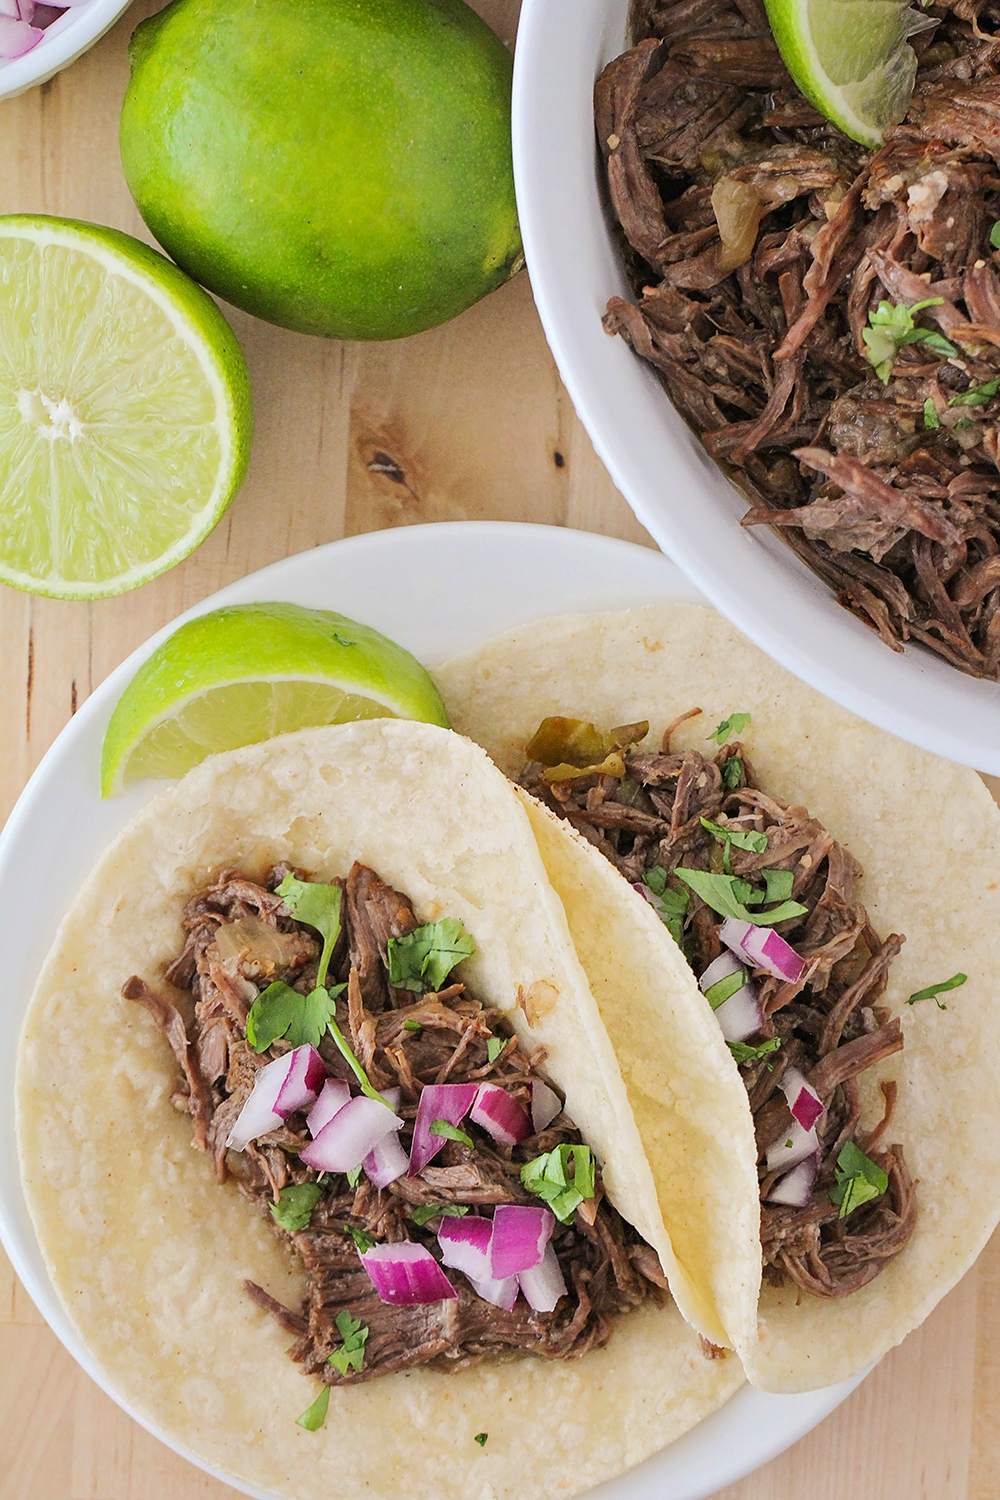 These juicy and flavorful Instant Pot barbacoa tacos are so delicious and easy to make, too!